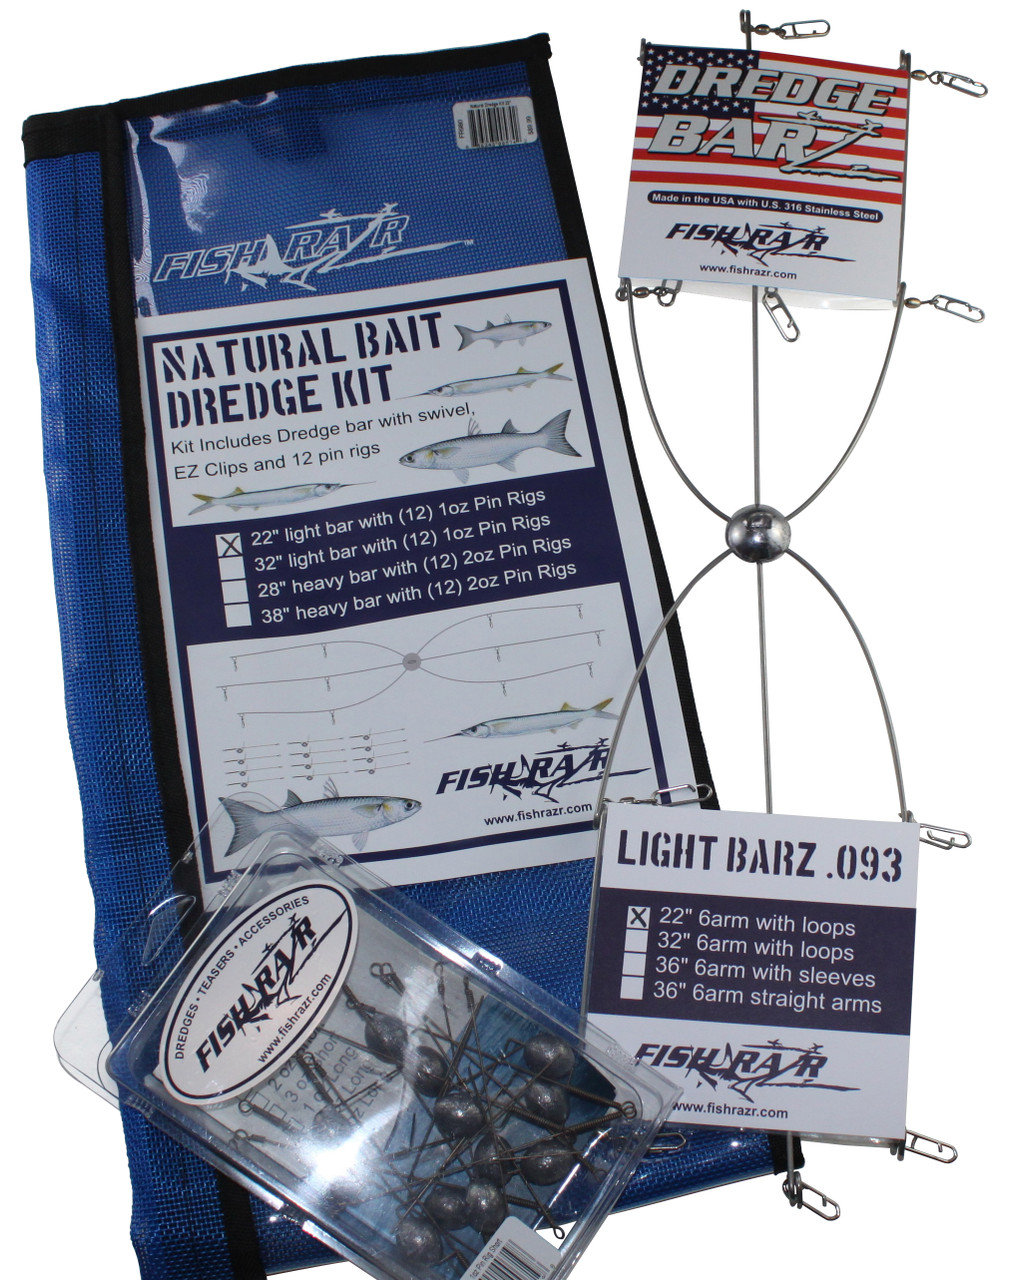 Natural Bait Dredge Kits